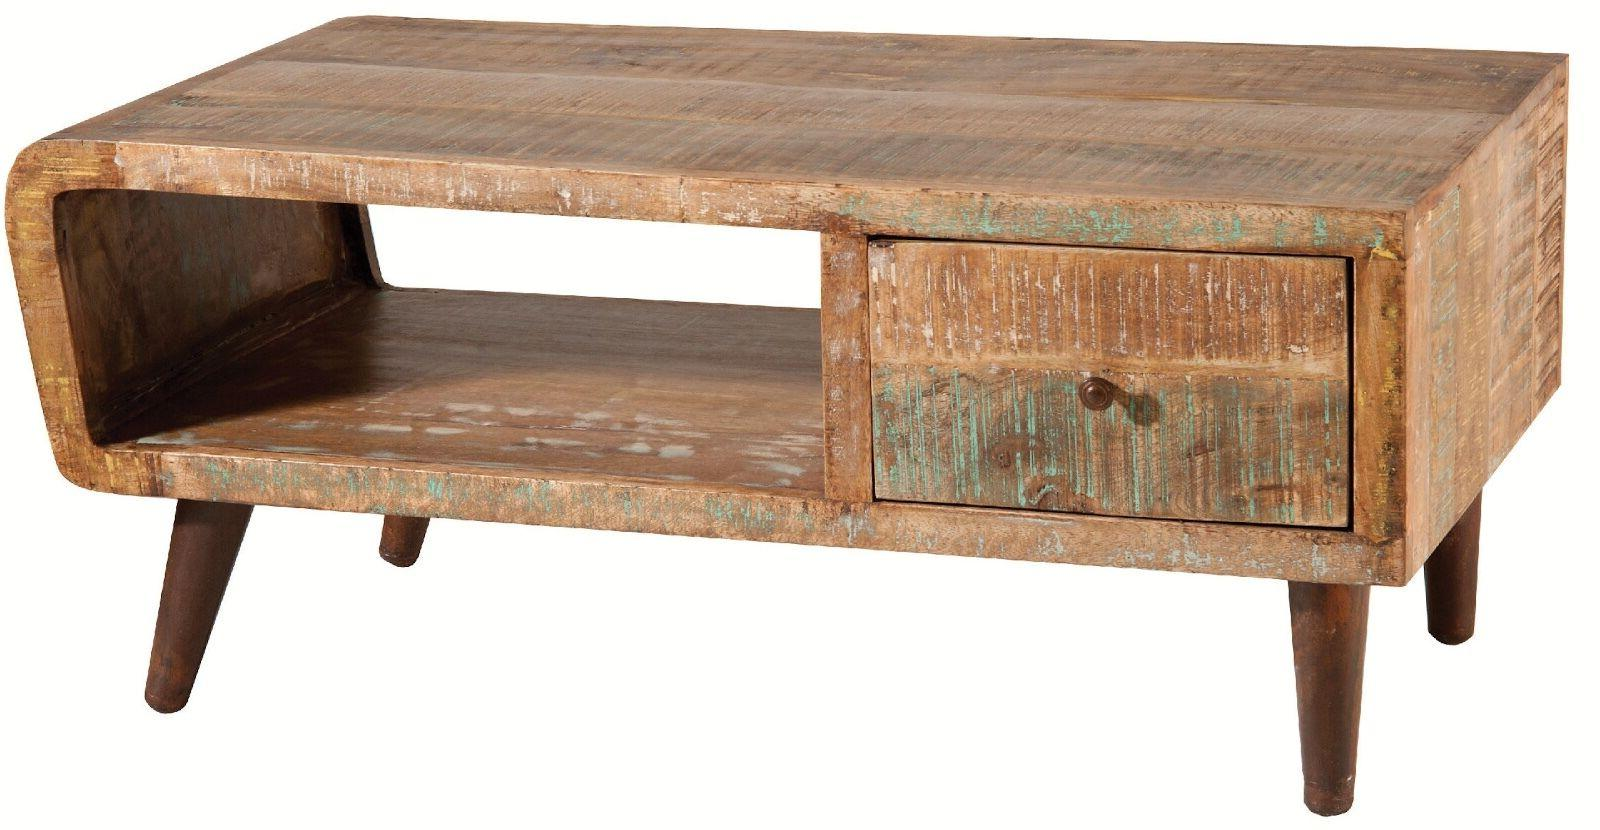 xl rustic industrial mid century modern reclaimed